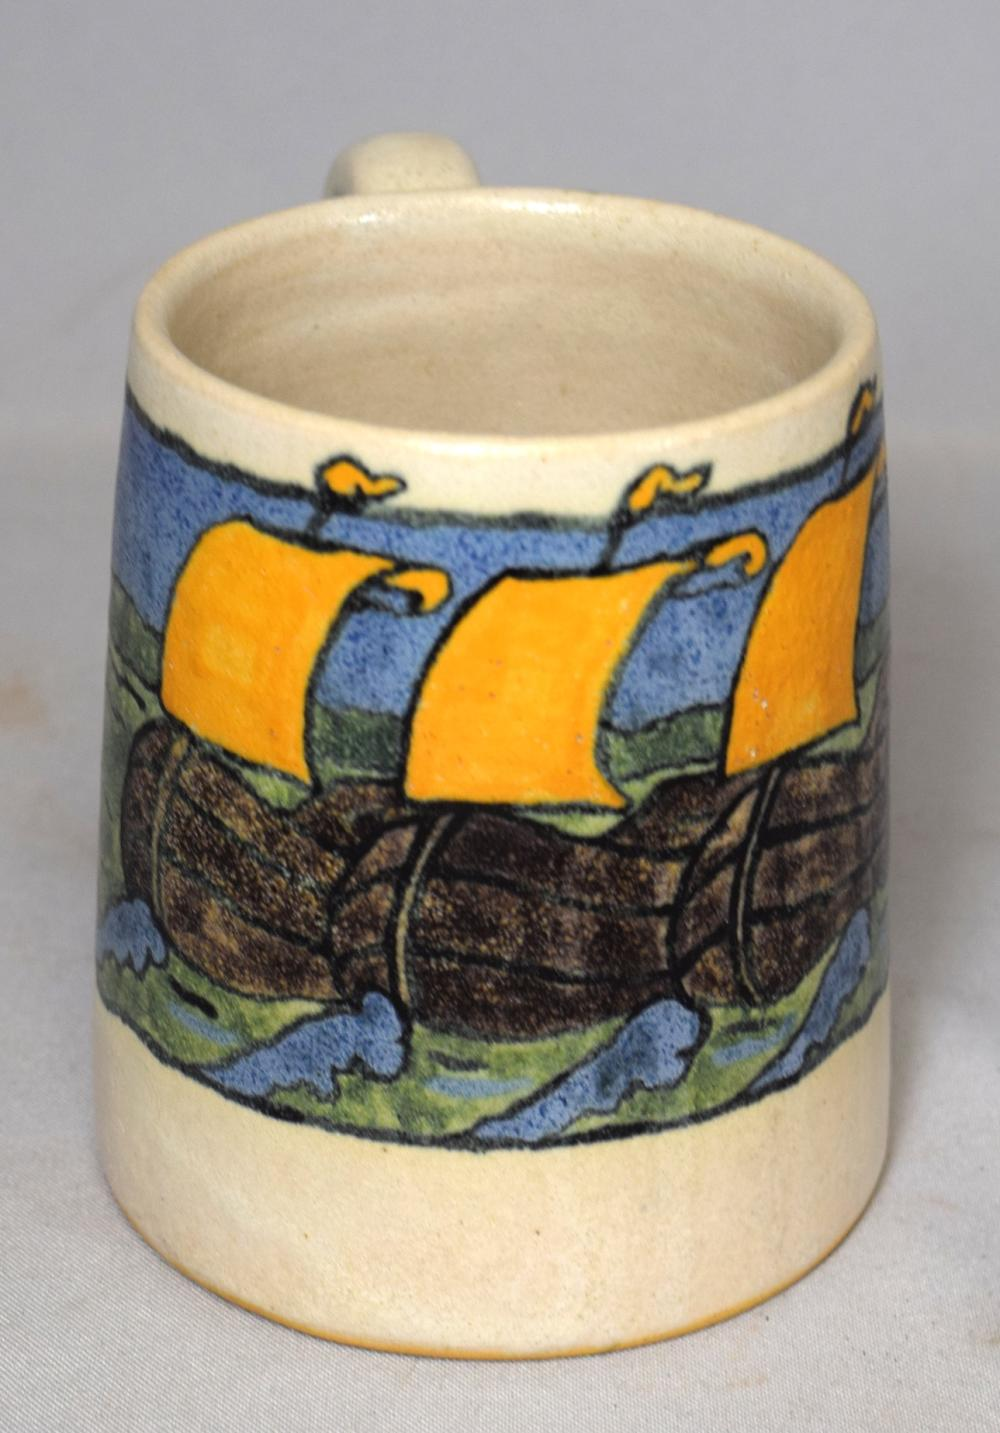 SATURDAY EVENING GIRLS SEG ART POTTERY MUG: